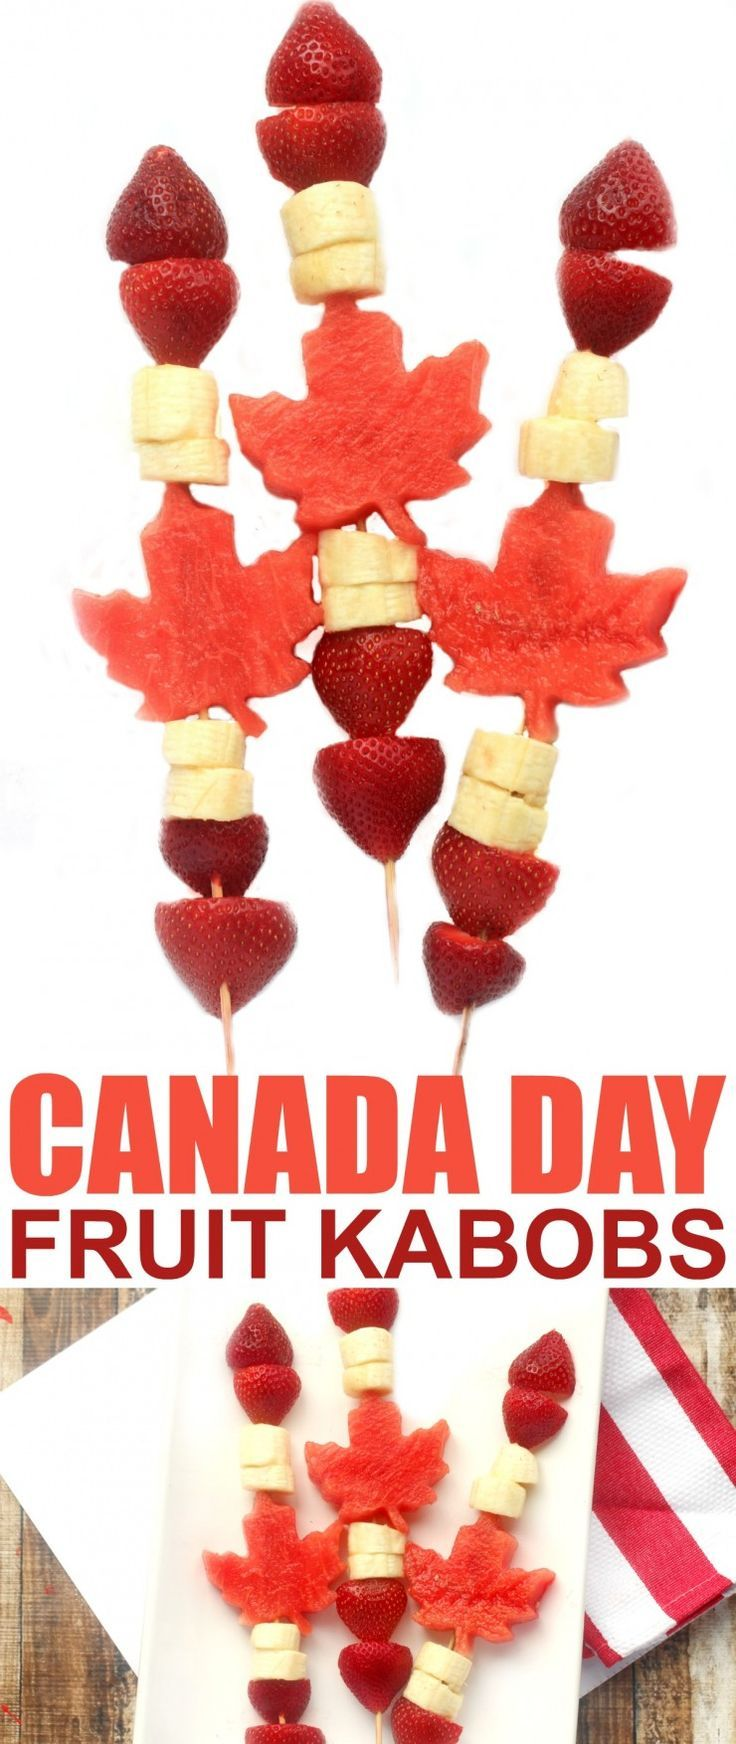 Celebrate Canada Day with this fun and healthy patriotic Canada Day Fruit Kabobs. They are super easy to put together and everyone will love eating them. A perfect addition to your Canada Day celebrations!: